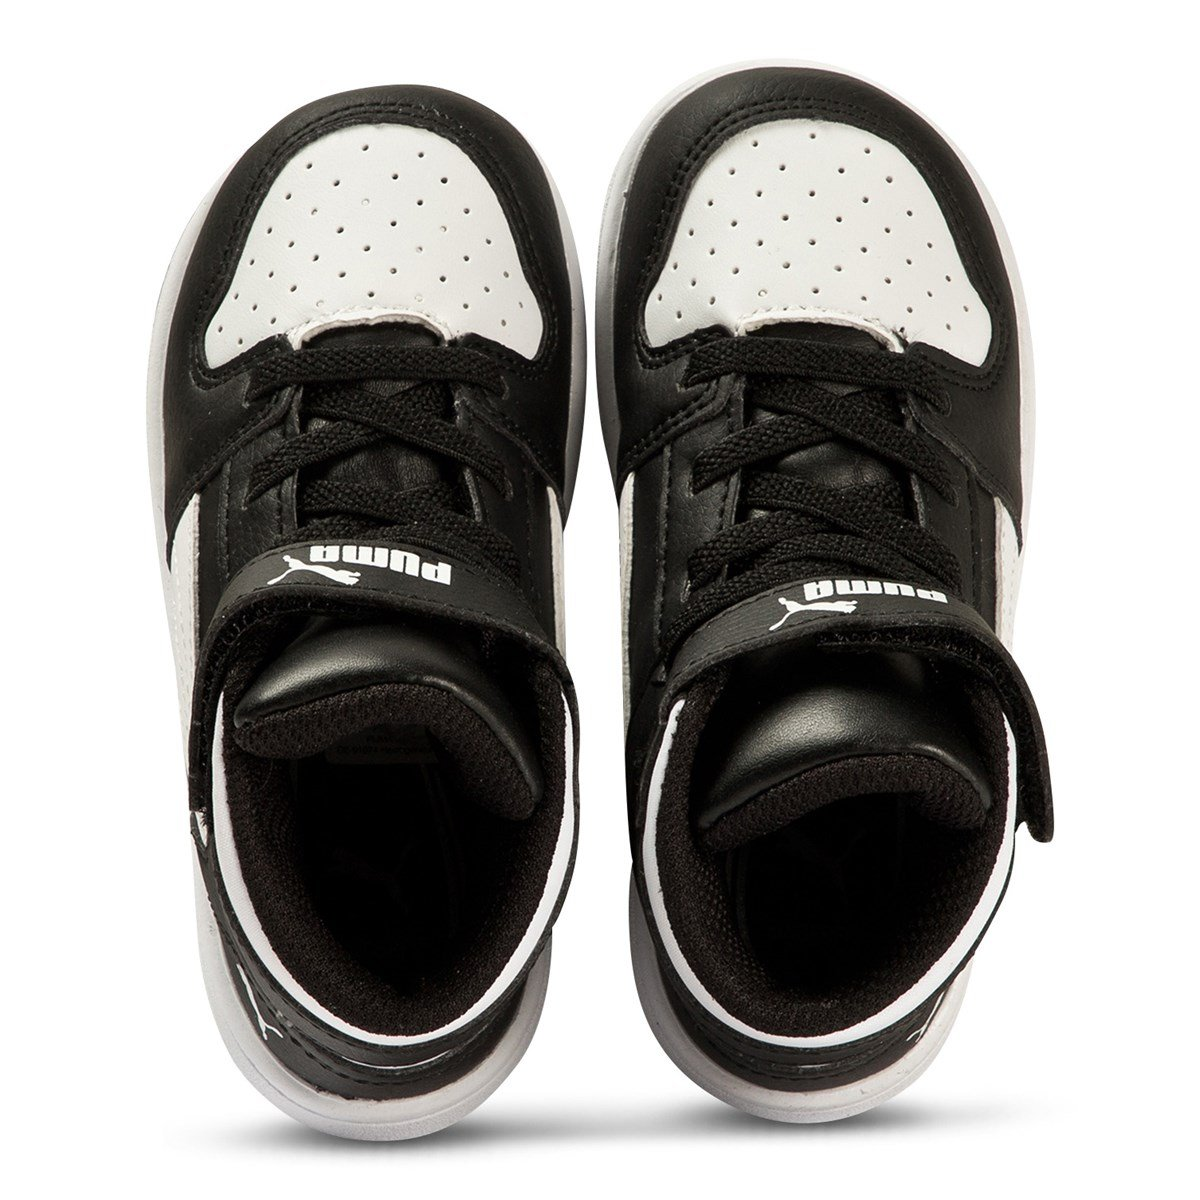 Puma Rebound Layup Infants Sneakers Black and White Babyshop.no